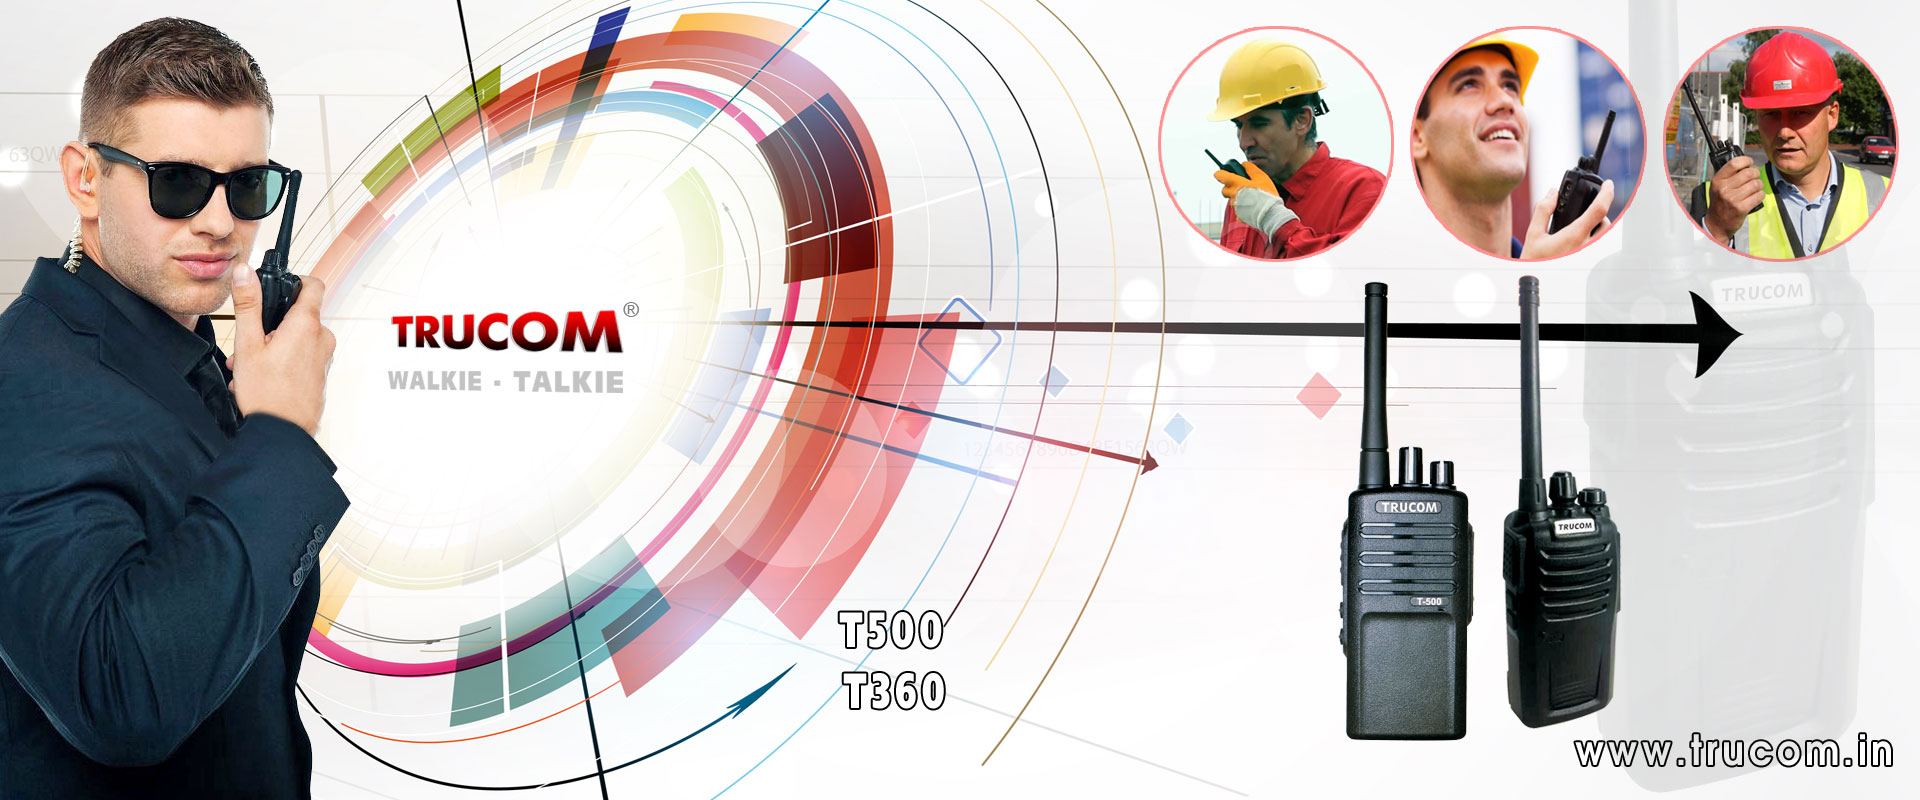 walike talkie Walky talky manufacturers in india two way radio communication walkie talkie suppliers India delhi